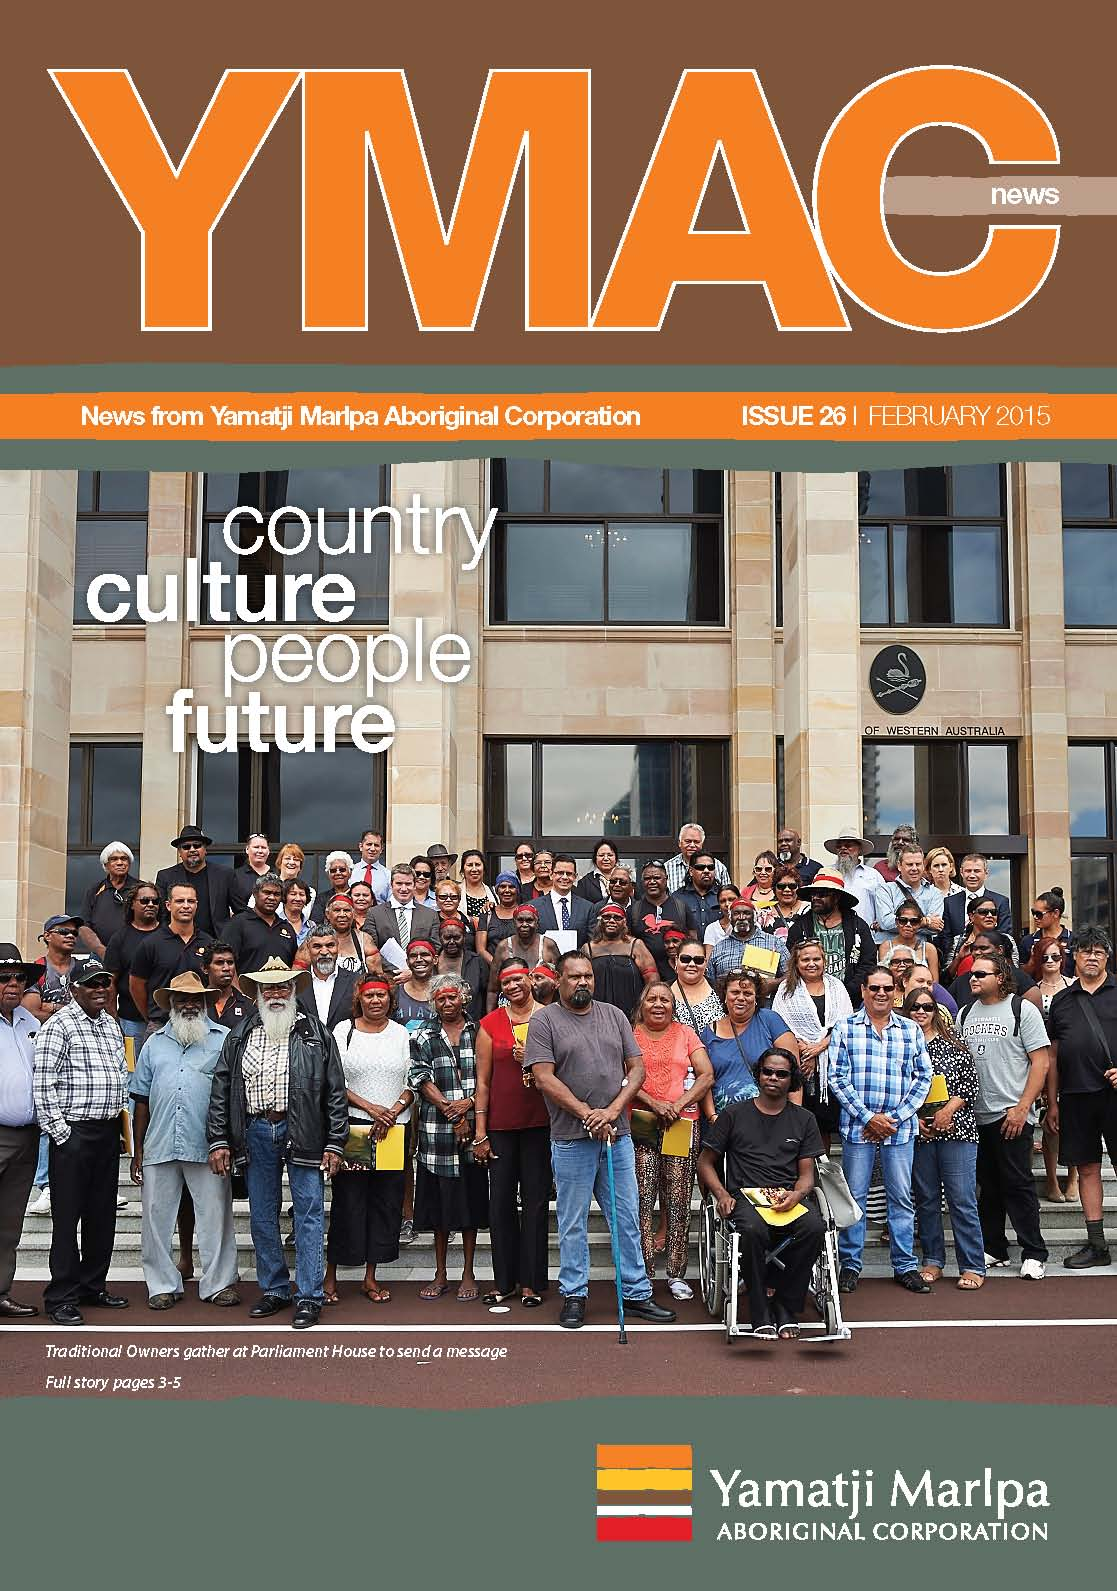 YMAC News issue 26 front cover